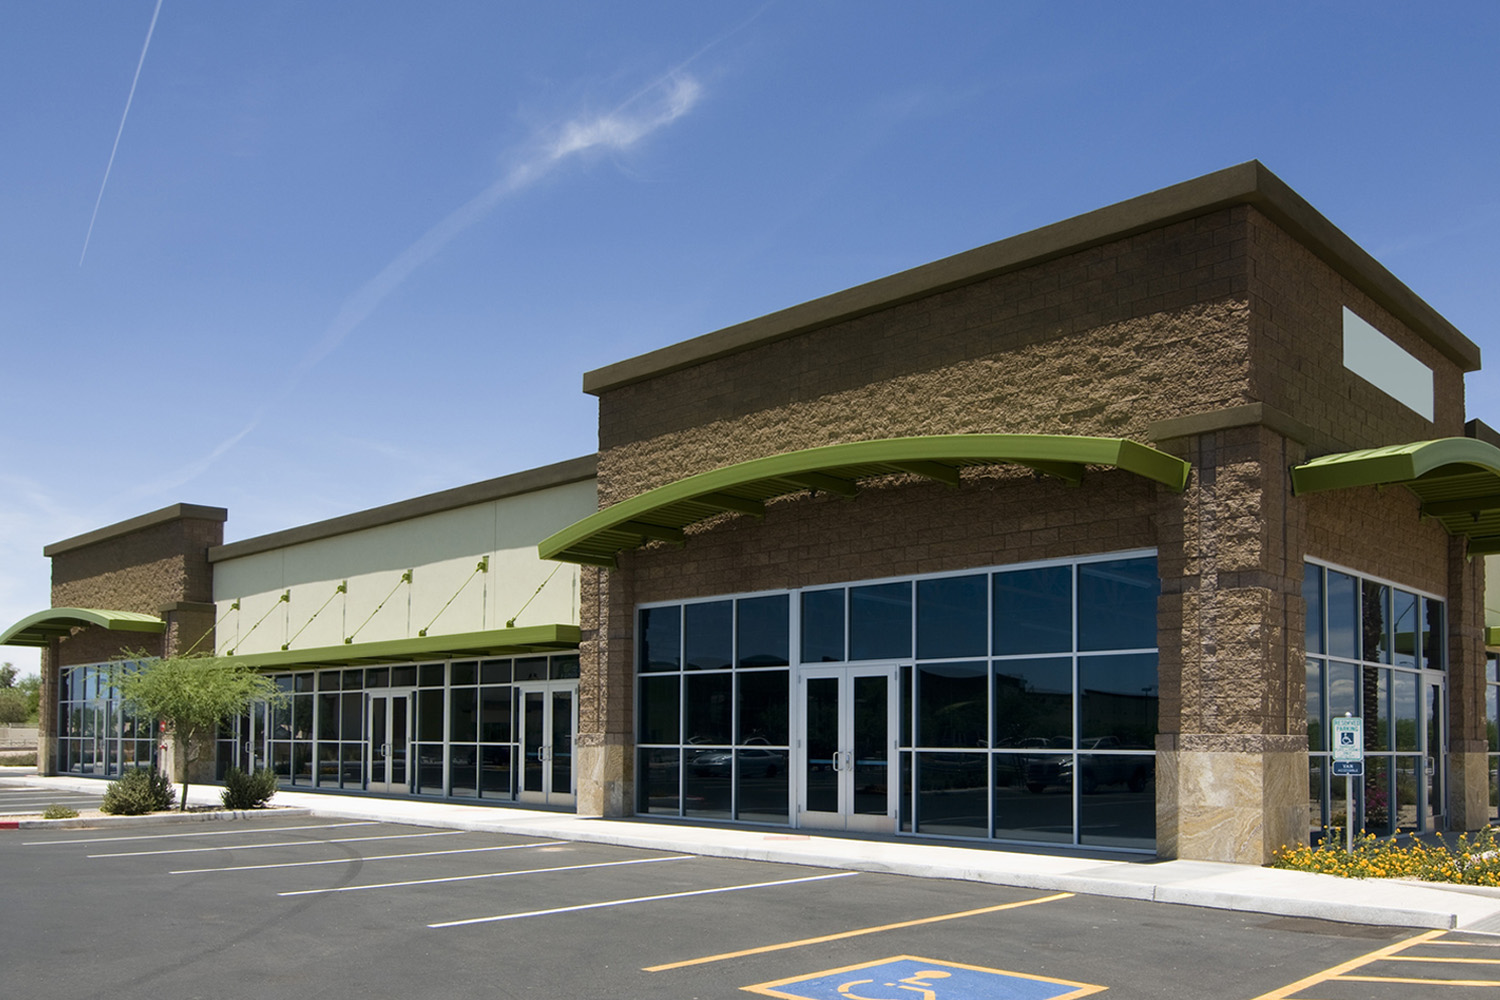 12 commercial retail buildings design images small for Small commercial building plans